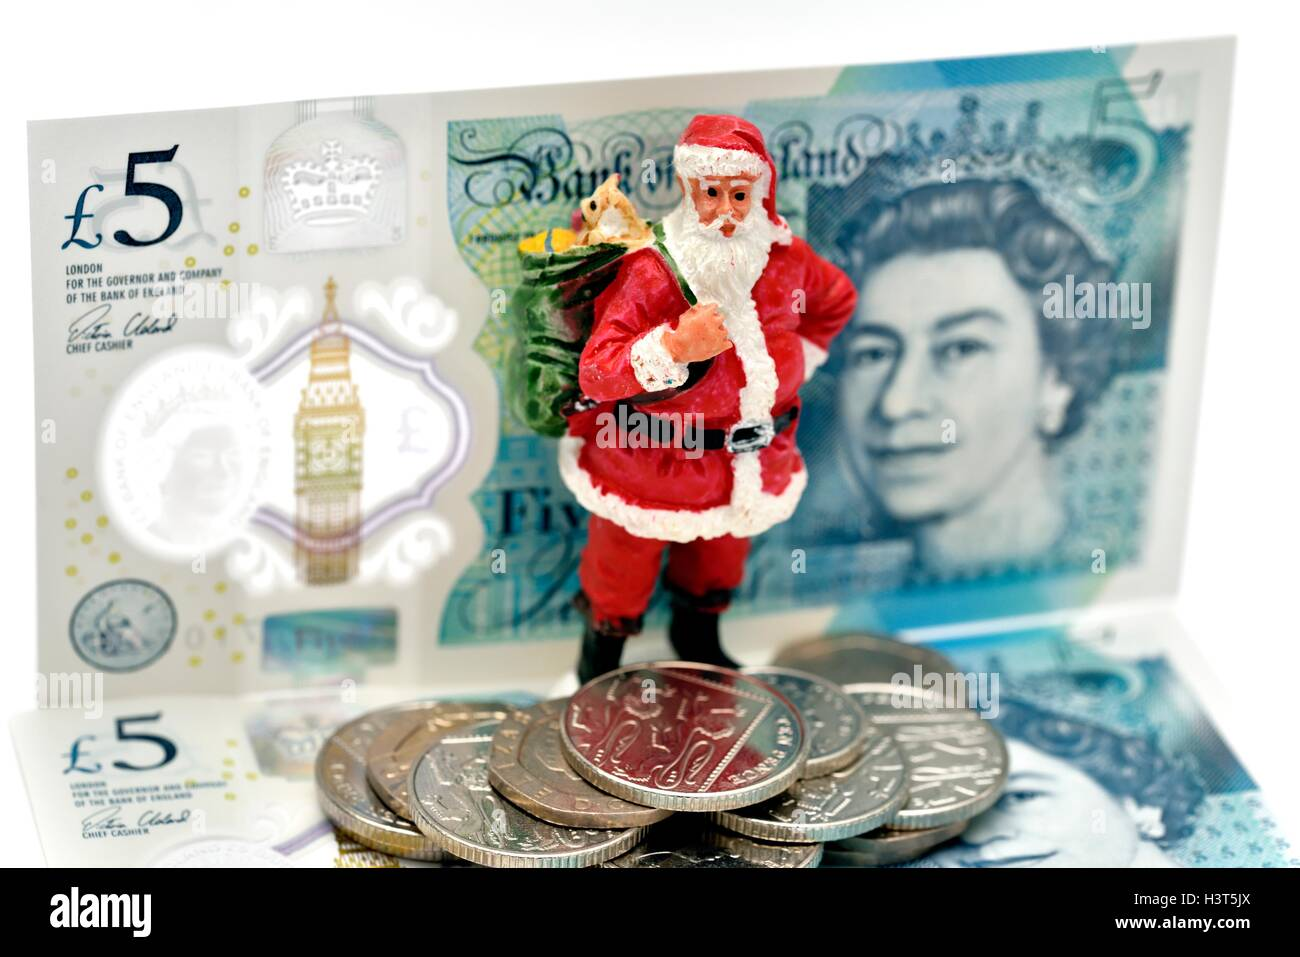 A santa claus figurine standing in front of some new five pound notes and coins.England UK. Stock Photo